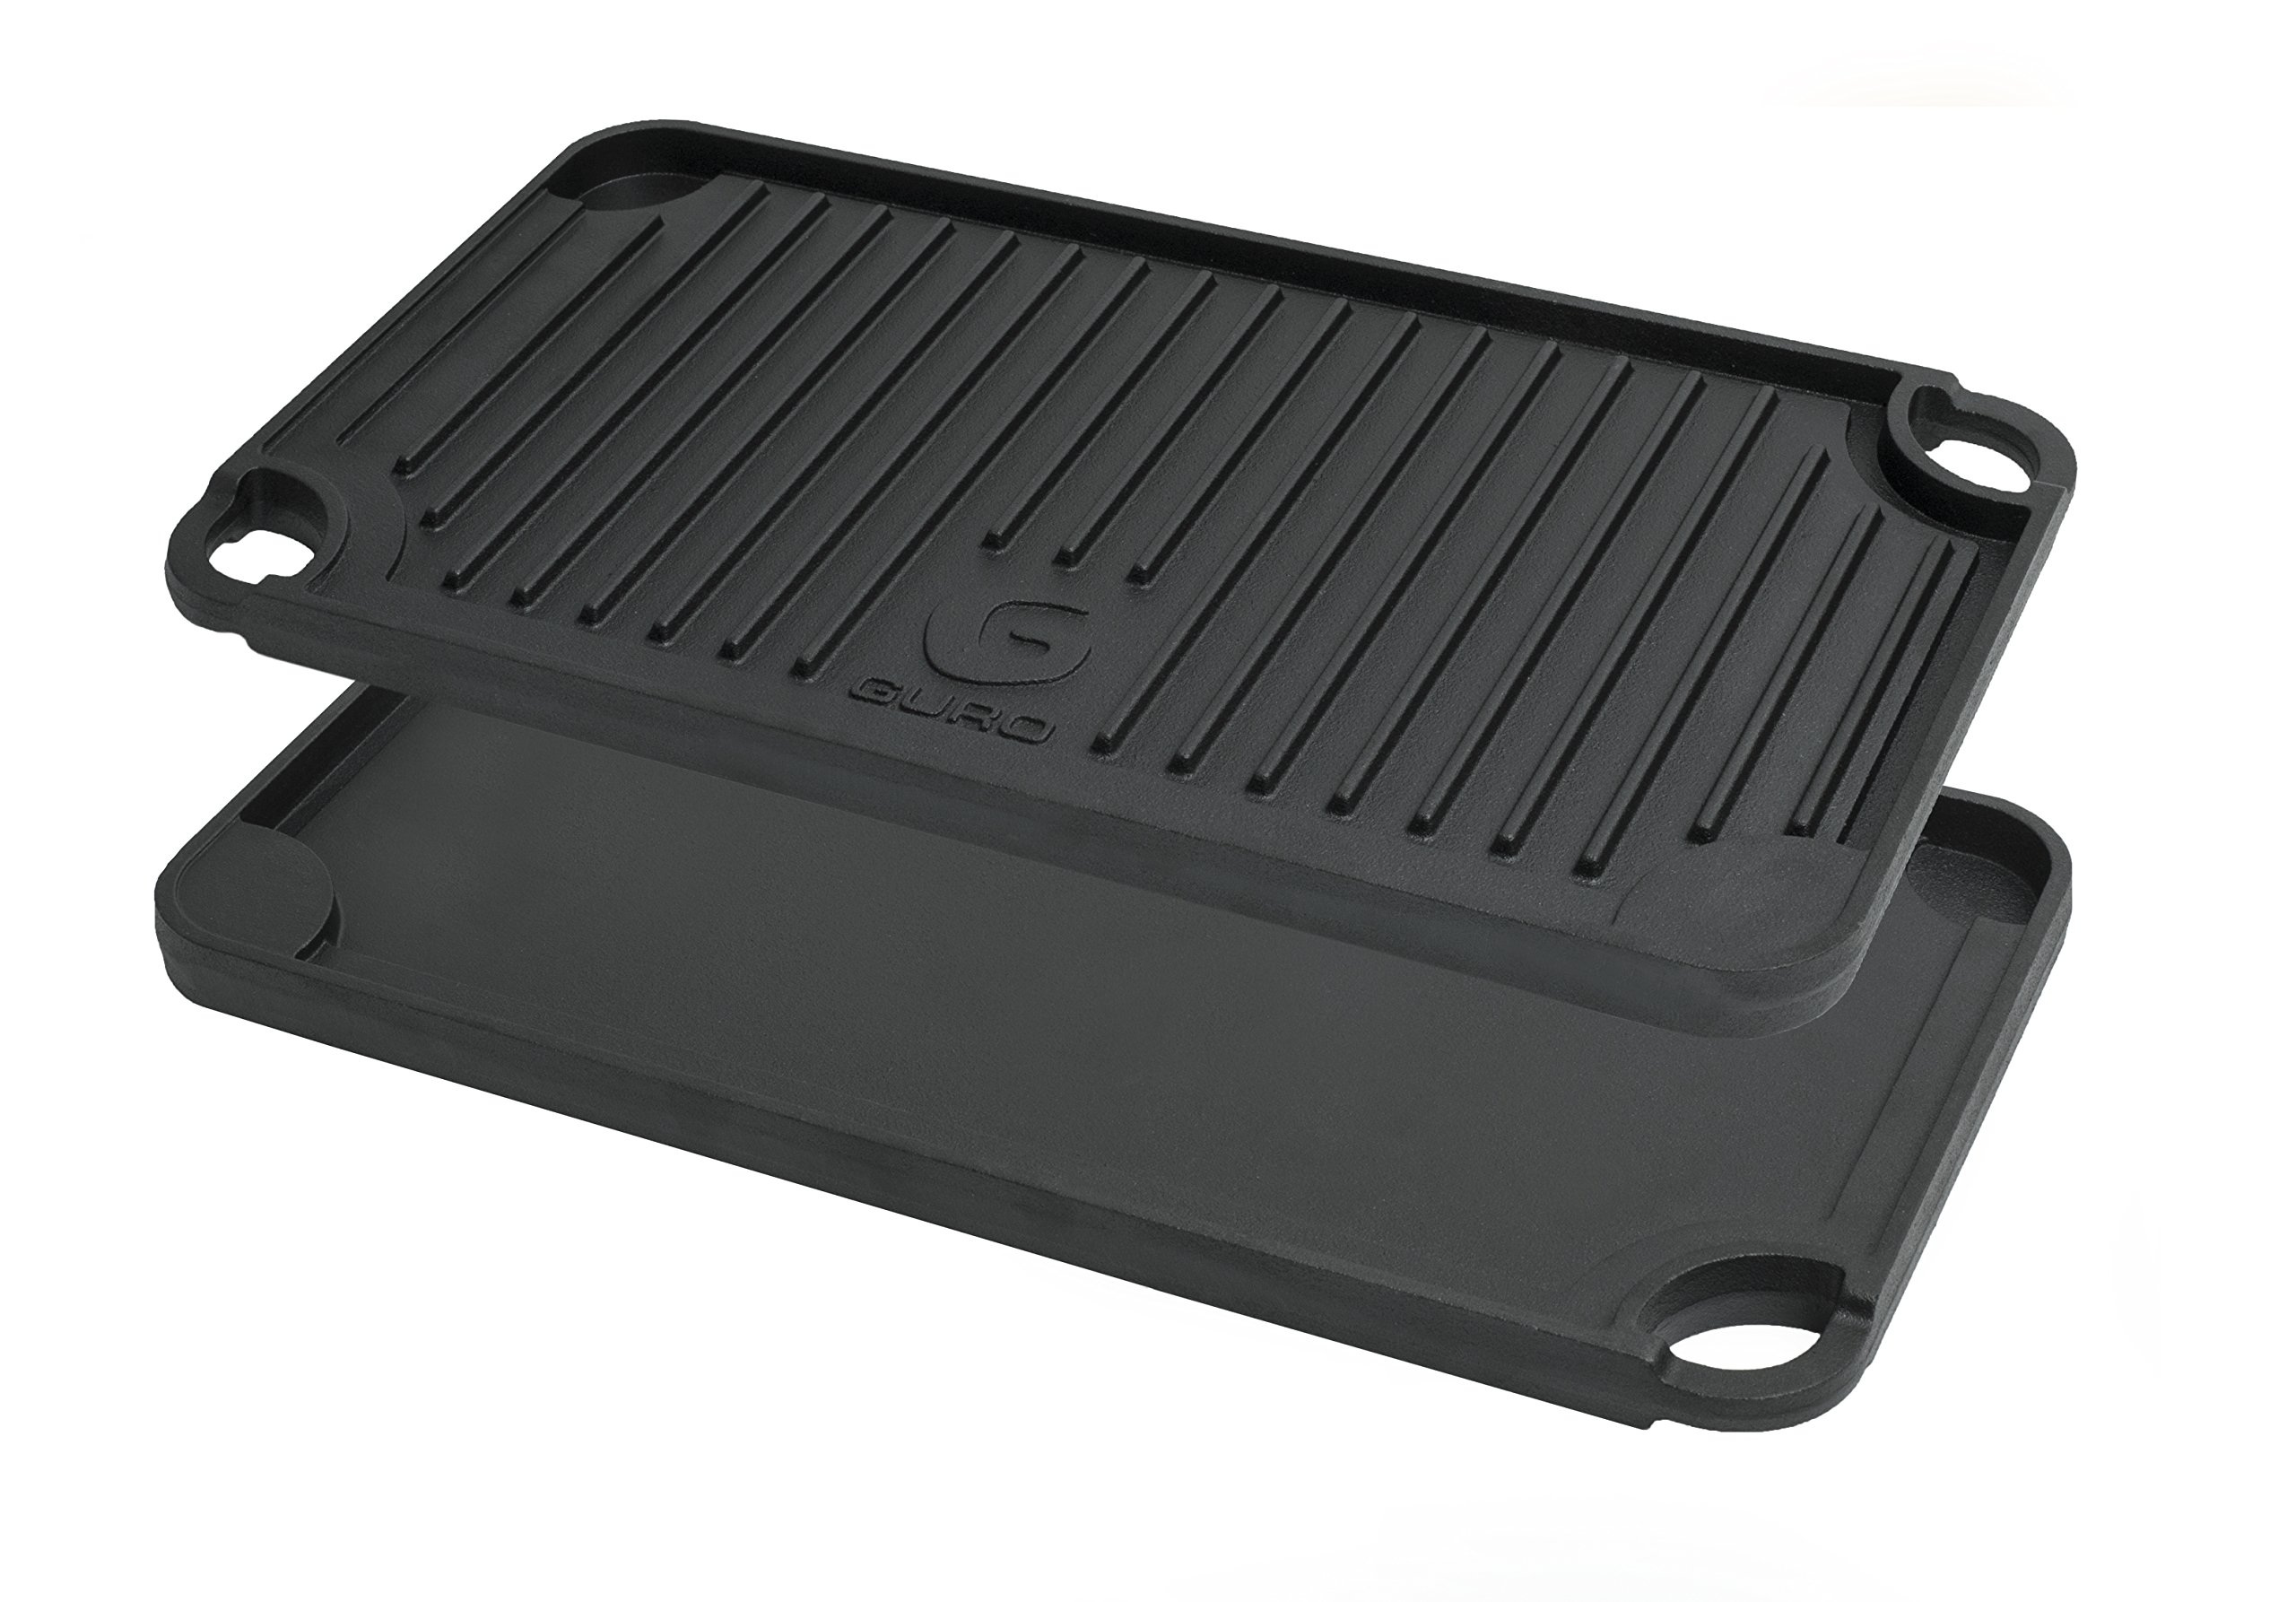 GURO Cast Iron Pre-Seasoned Double Play Griddle / Grill, Two Sizes (17'' x 9'')